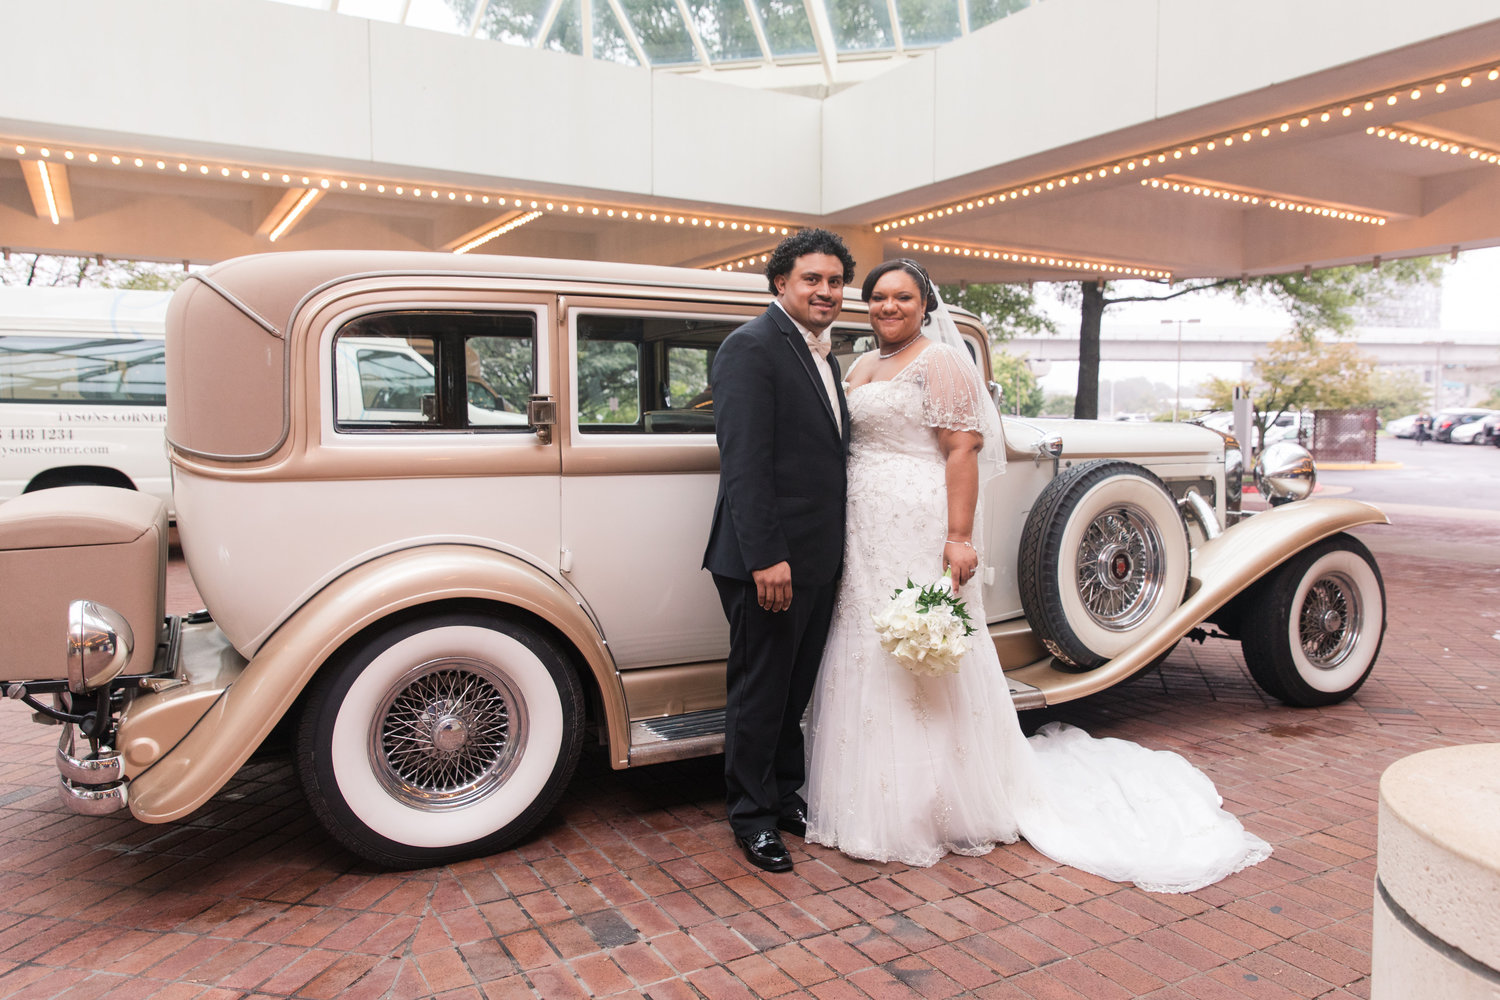 bride and groom stand in front of vintage car at their DIY wedding Photography by Marirosa